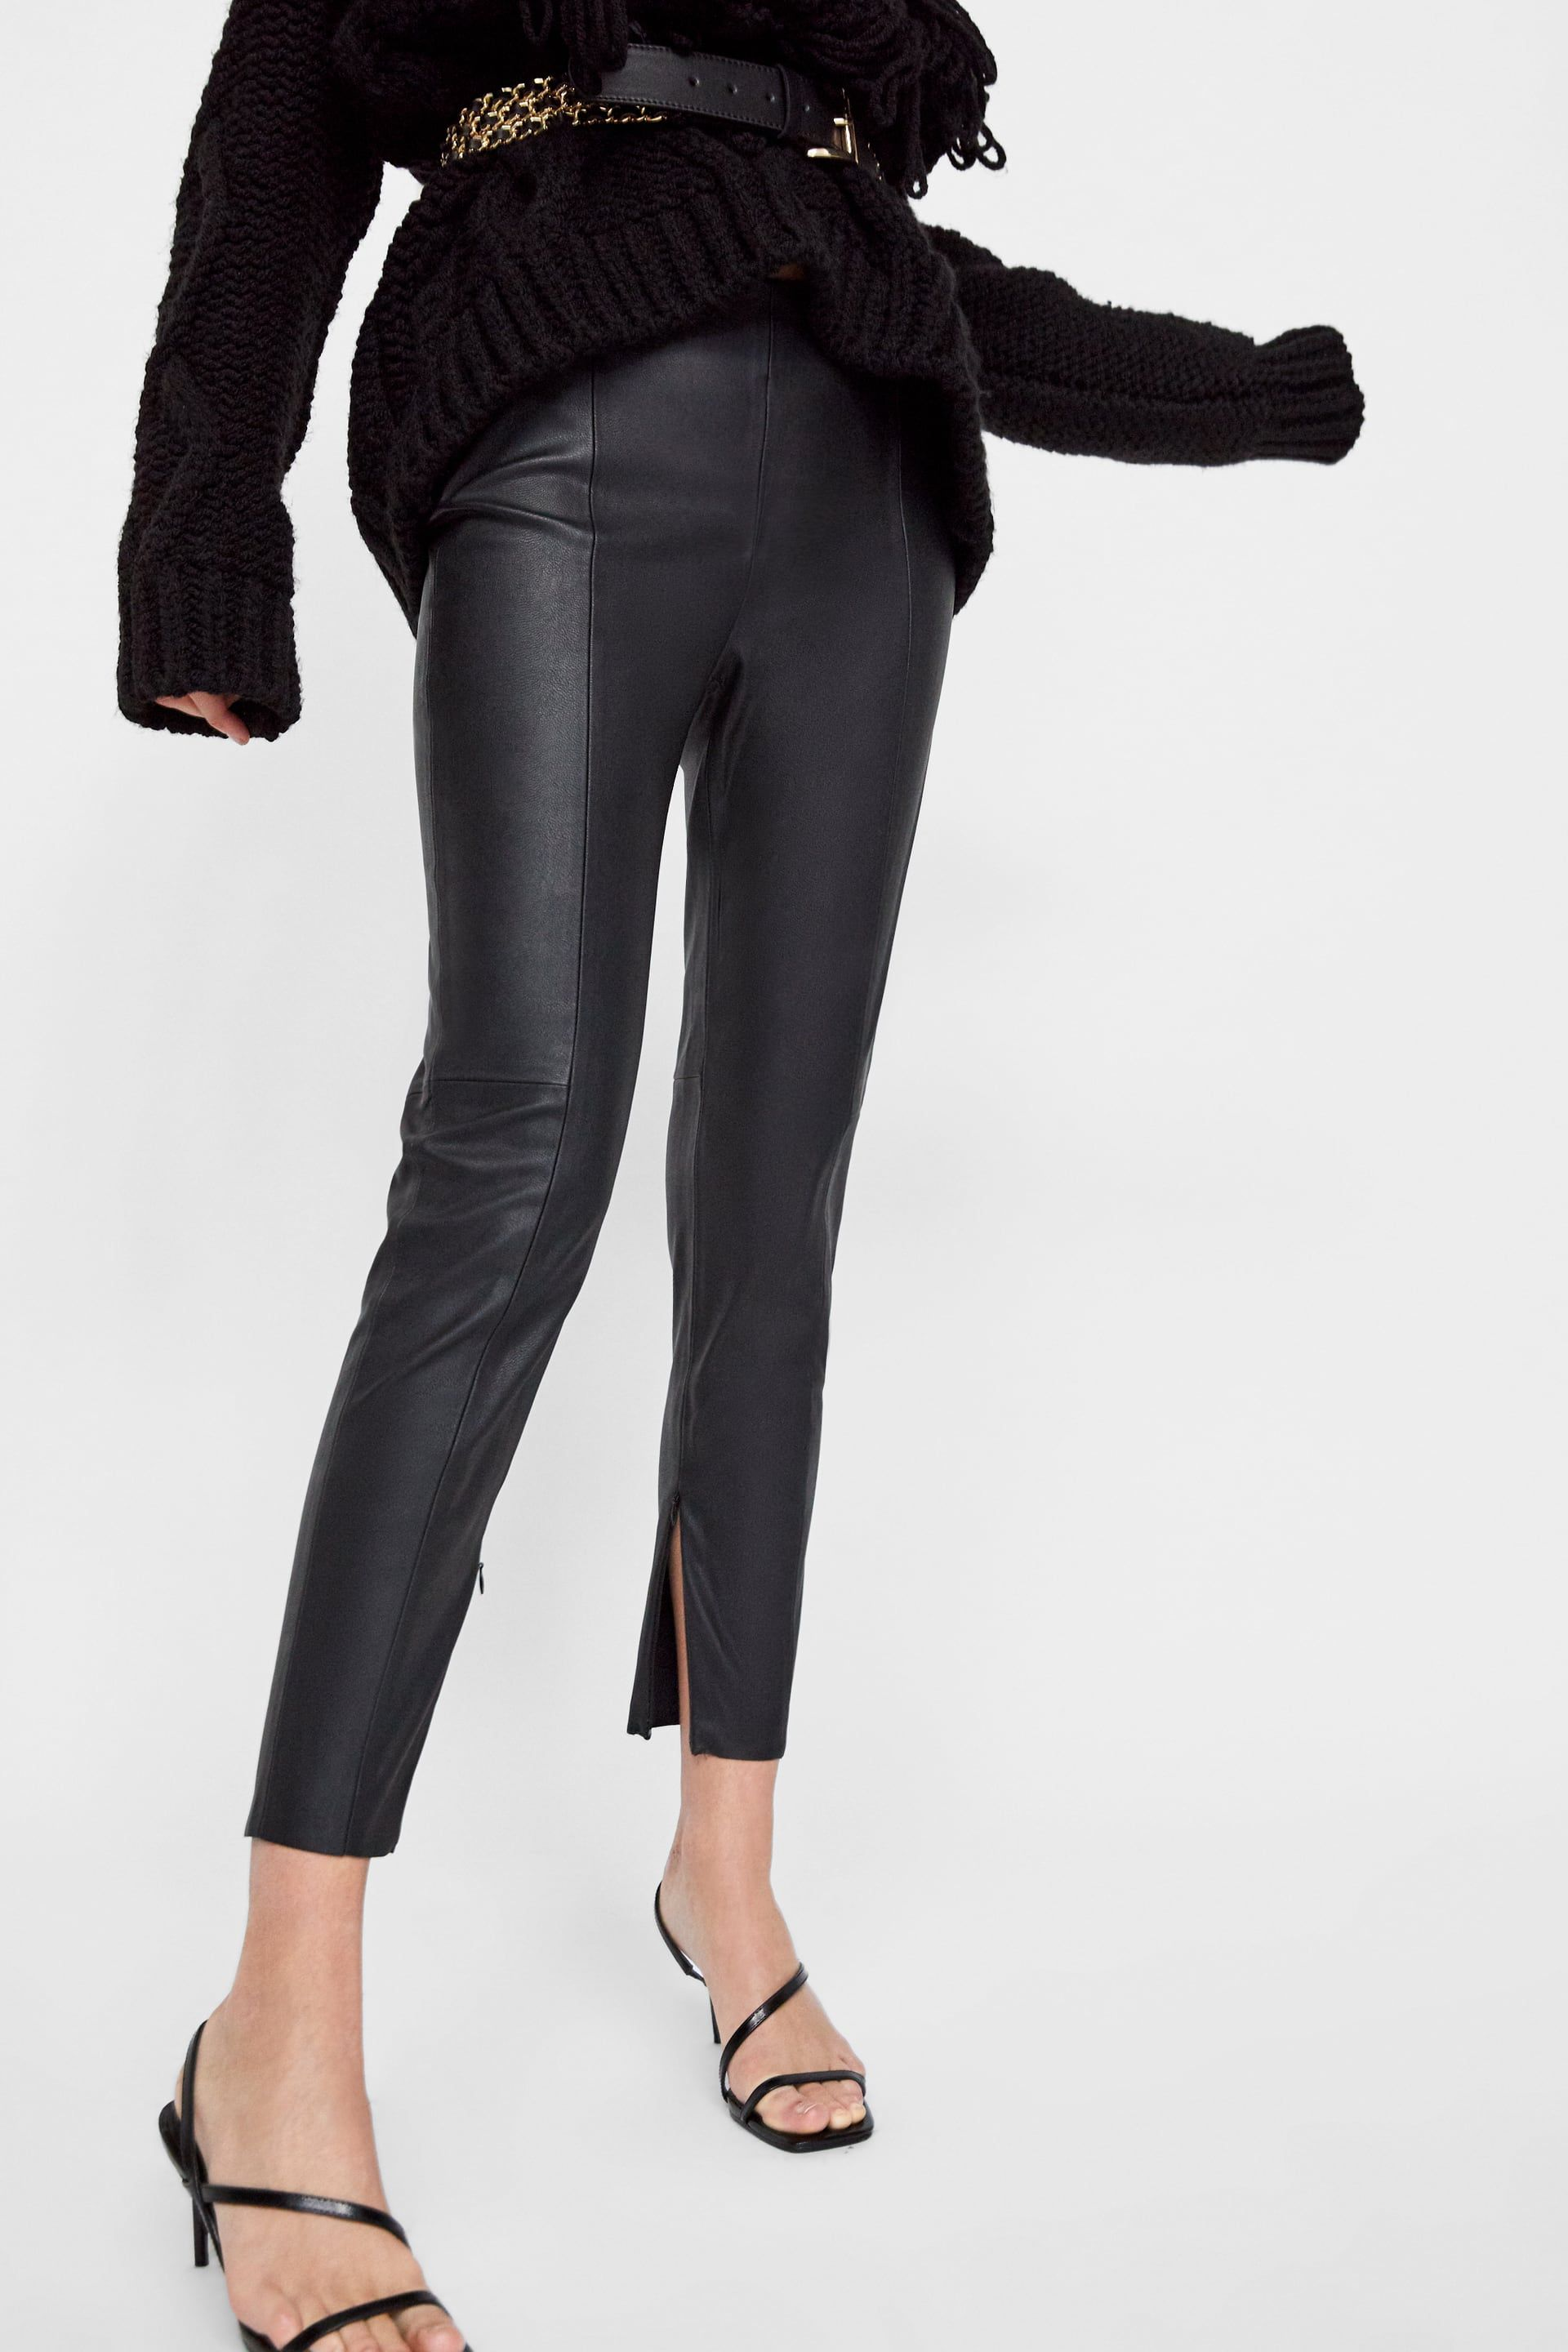 Image 2 Of Faux Leather Leggings From Zara Faux Leather Pants Faux Leather Leggings Leather Leggings